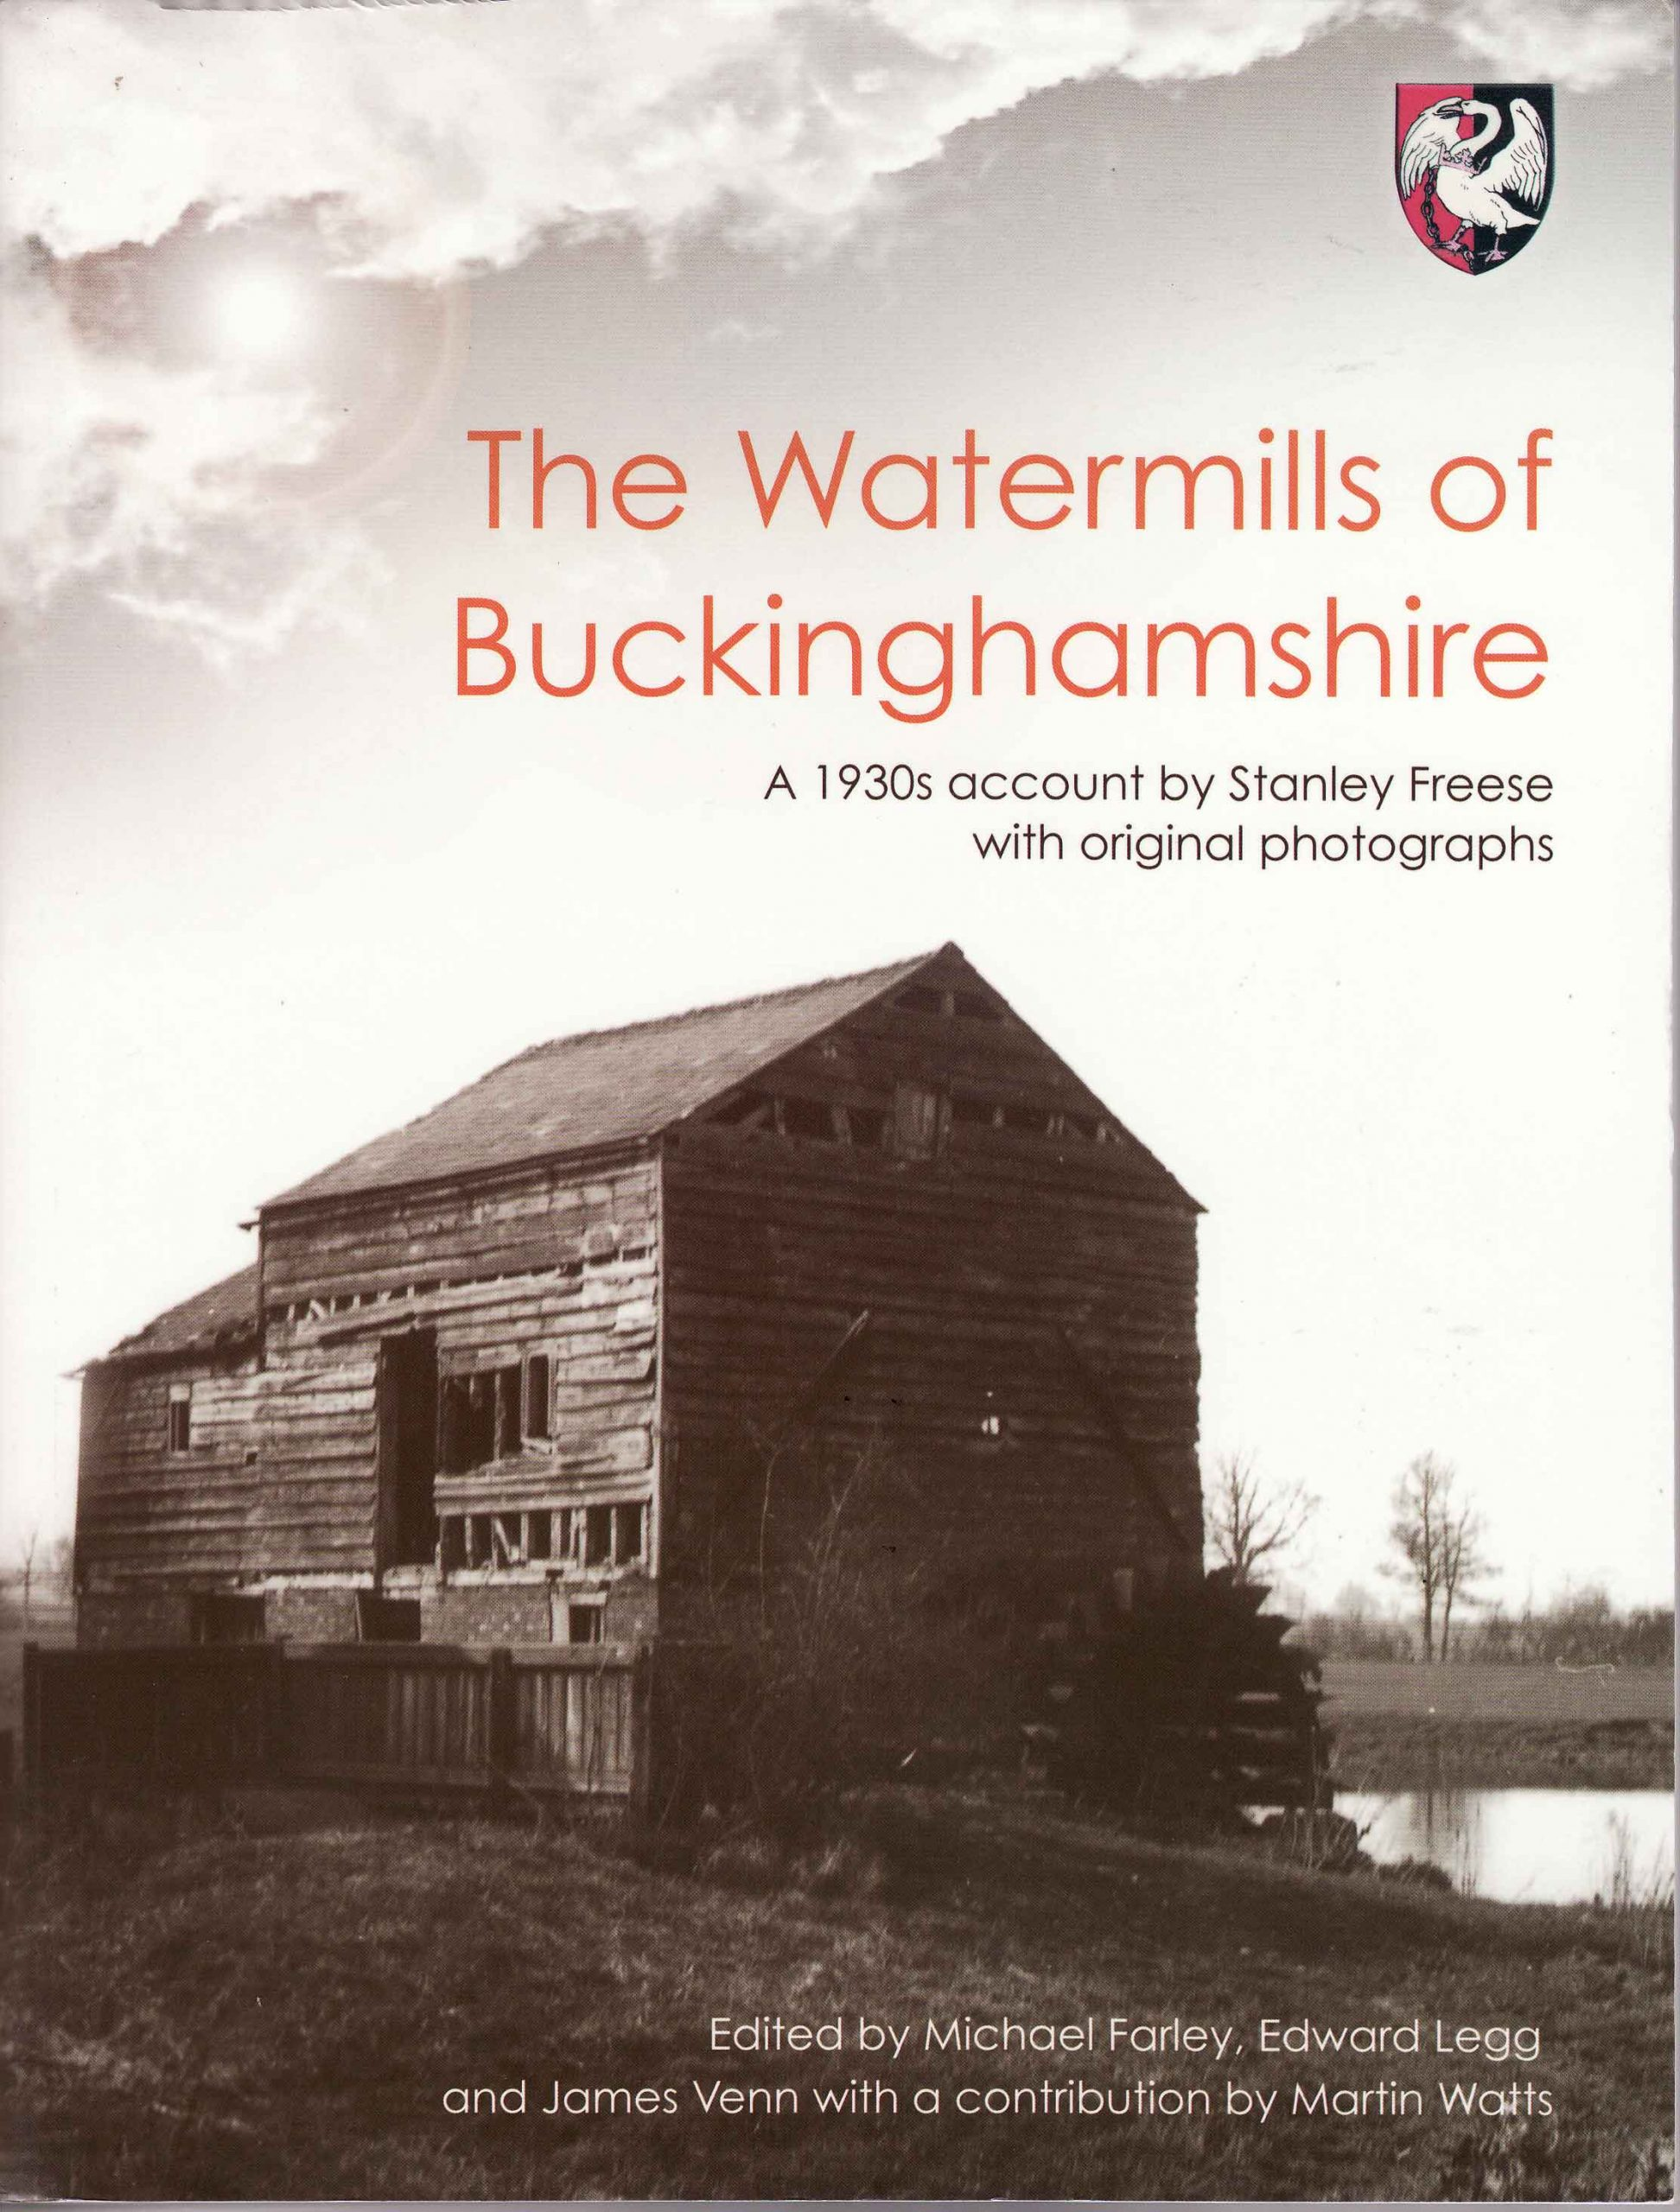 The Watermills of Buckinghamshire.